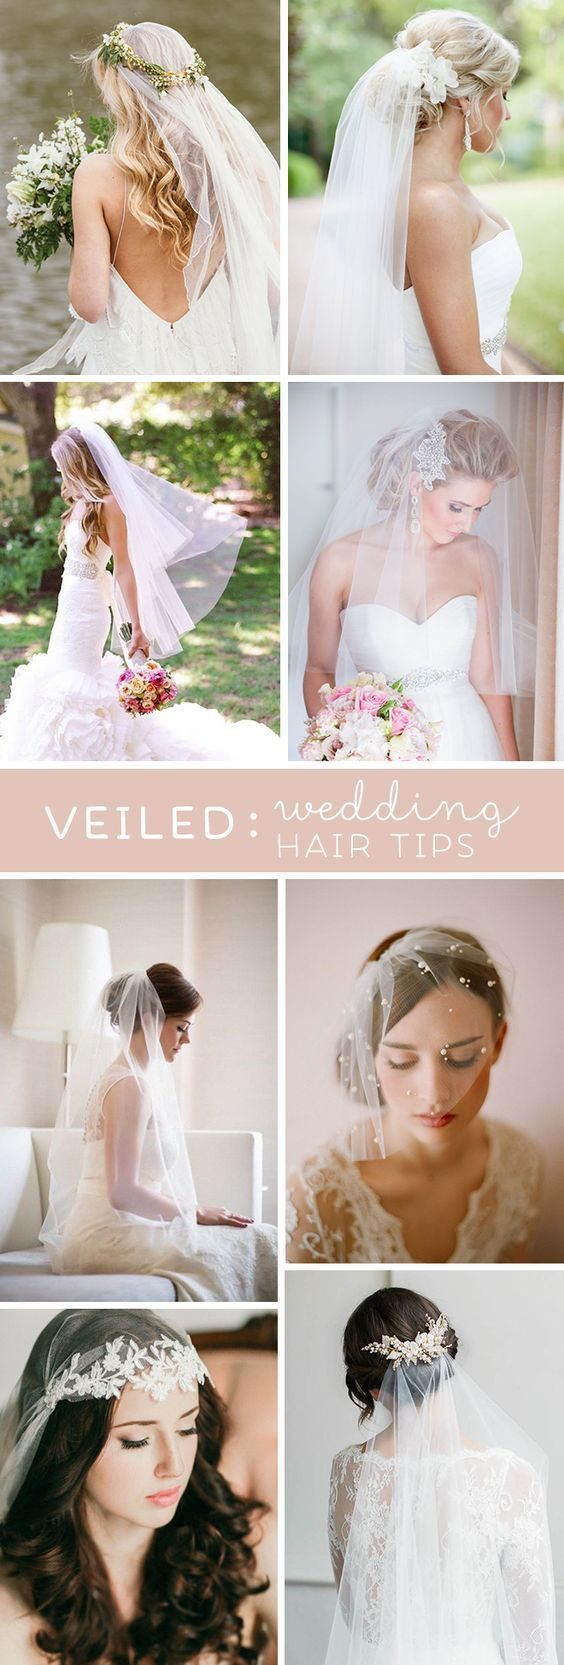 best our wedding images on pinterest weddings invitations and